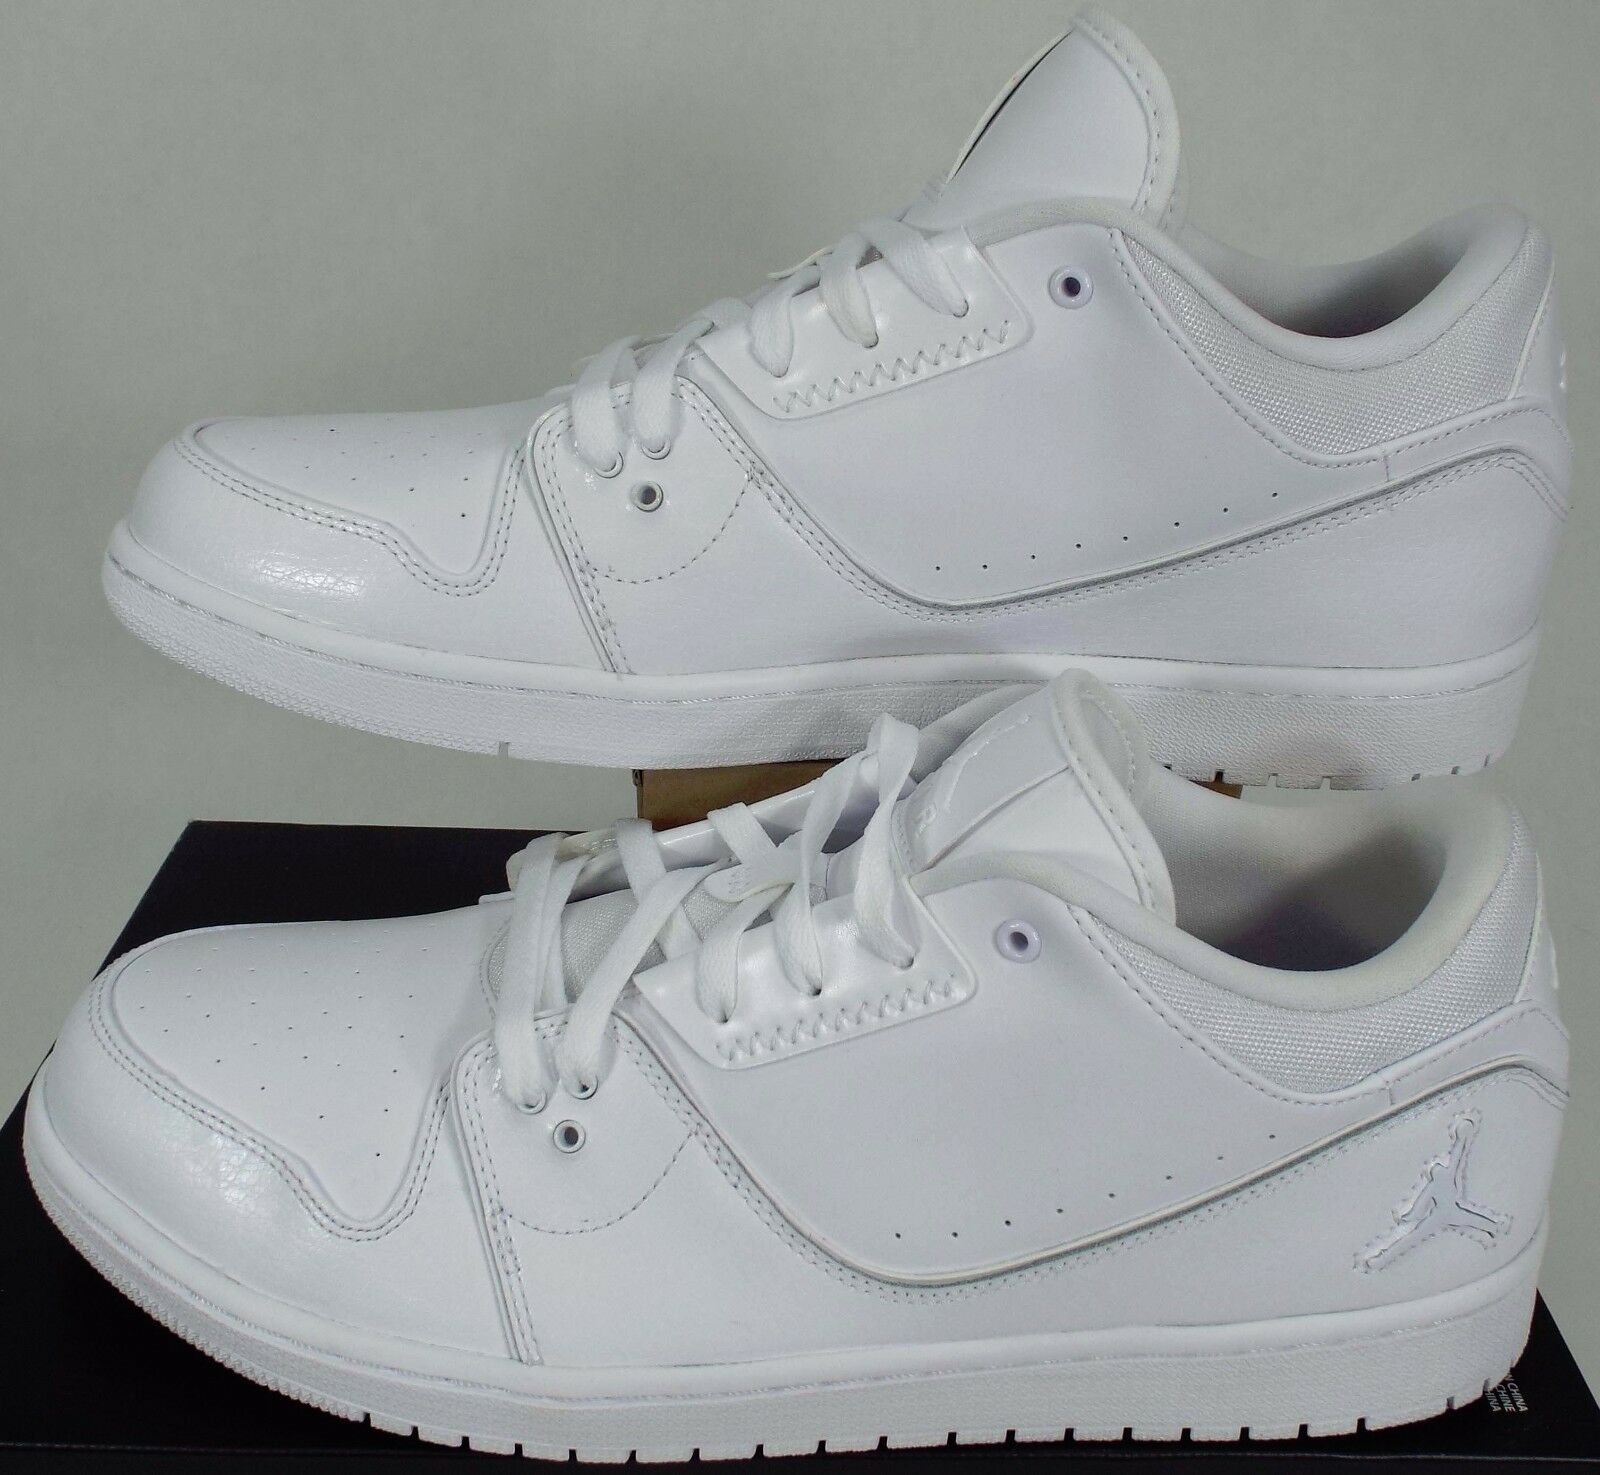 Great discount New Mens 14 NIKE Air Jordan 1 Flight 2 Low White Leather Shoes Price reduction